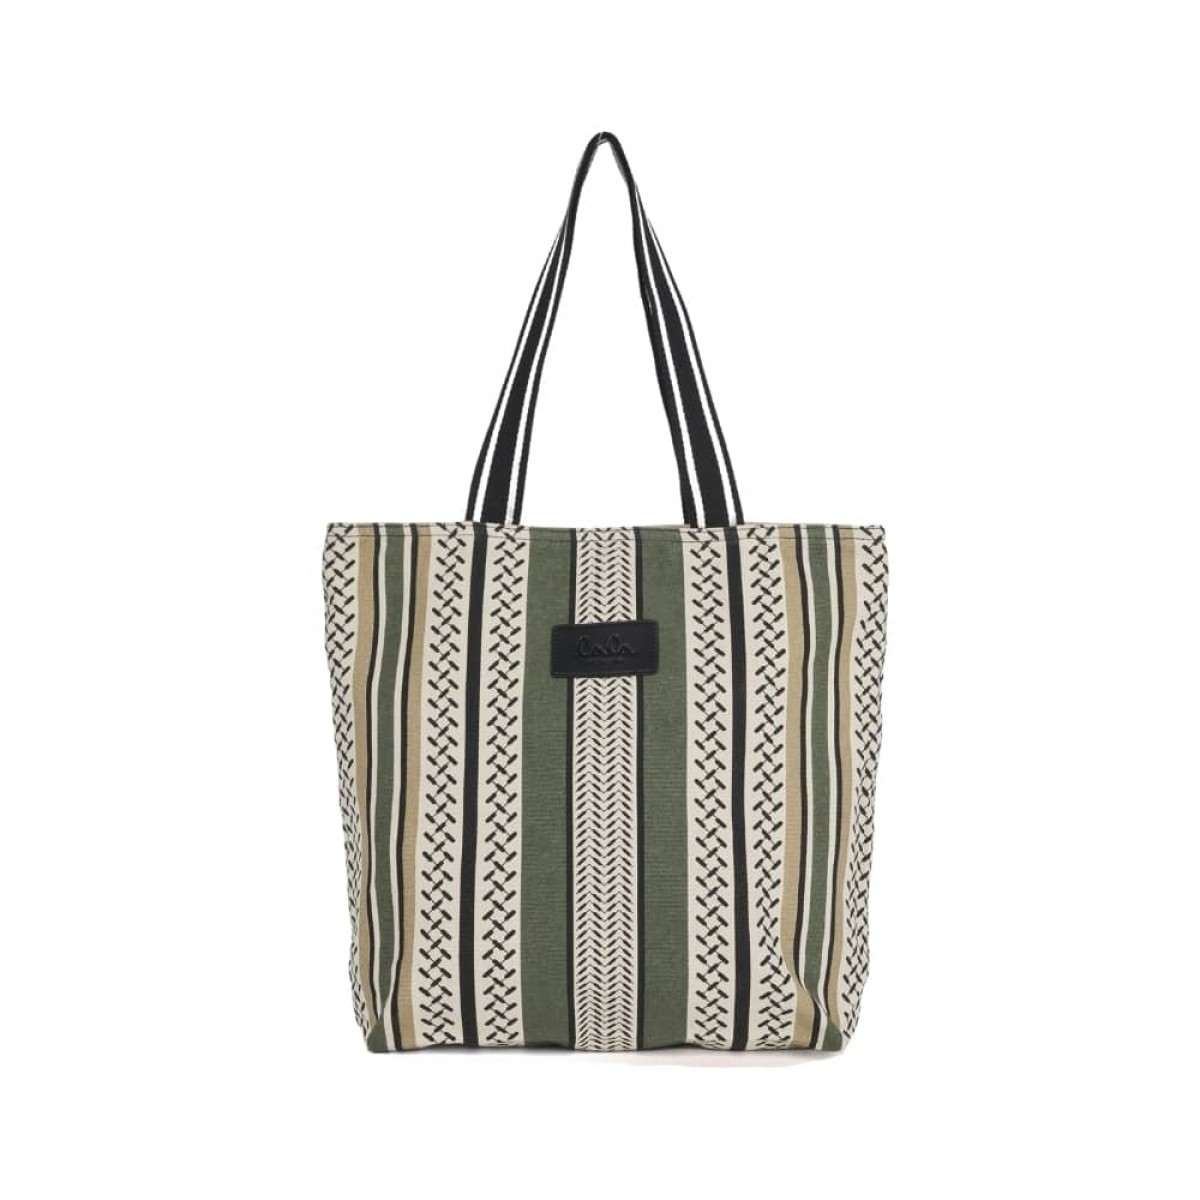 tote carmela colored - olive - front